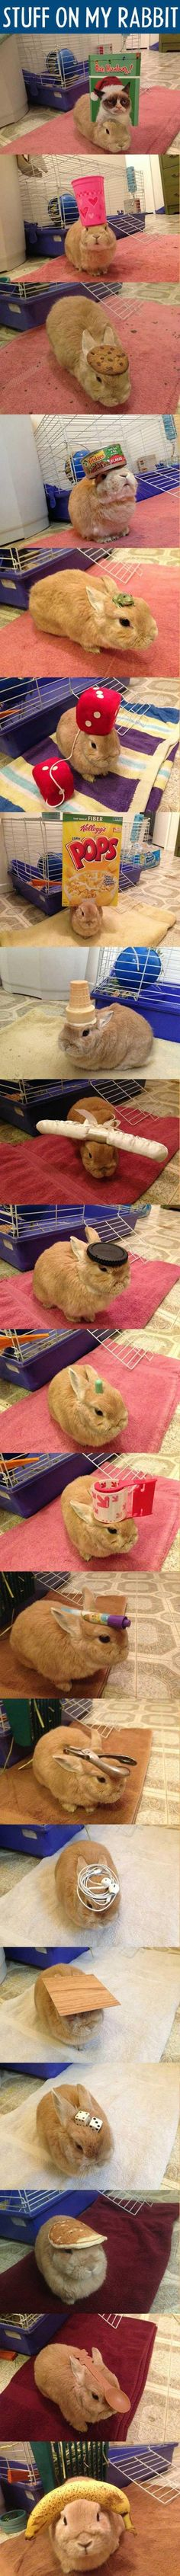 Bahah I want a bunny to put stuff on! XD